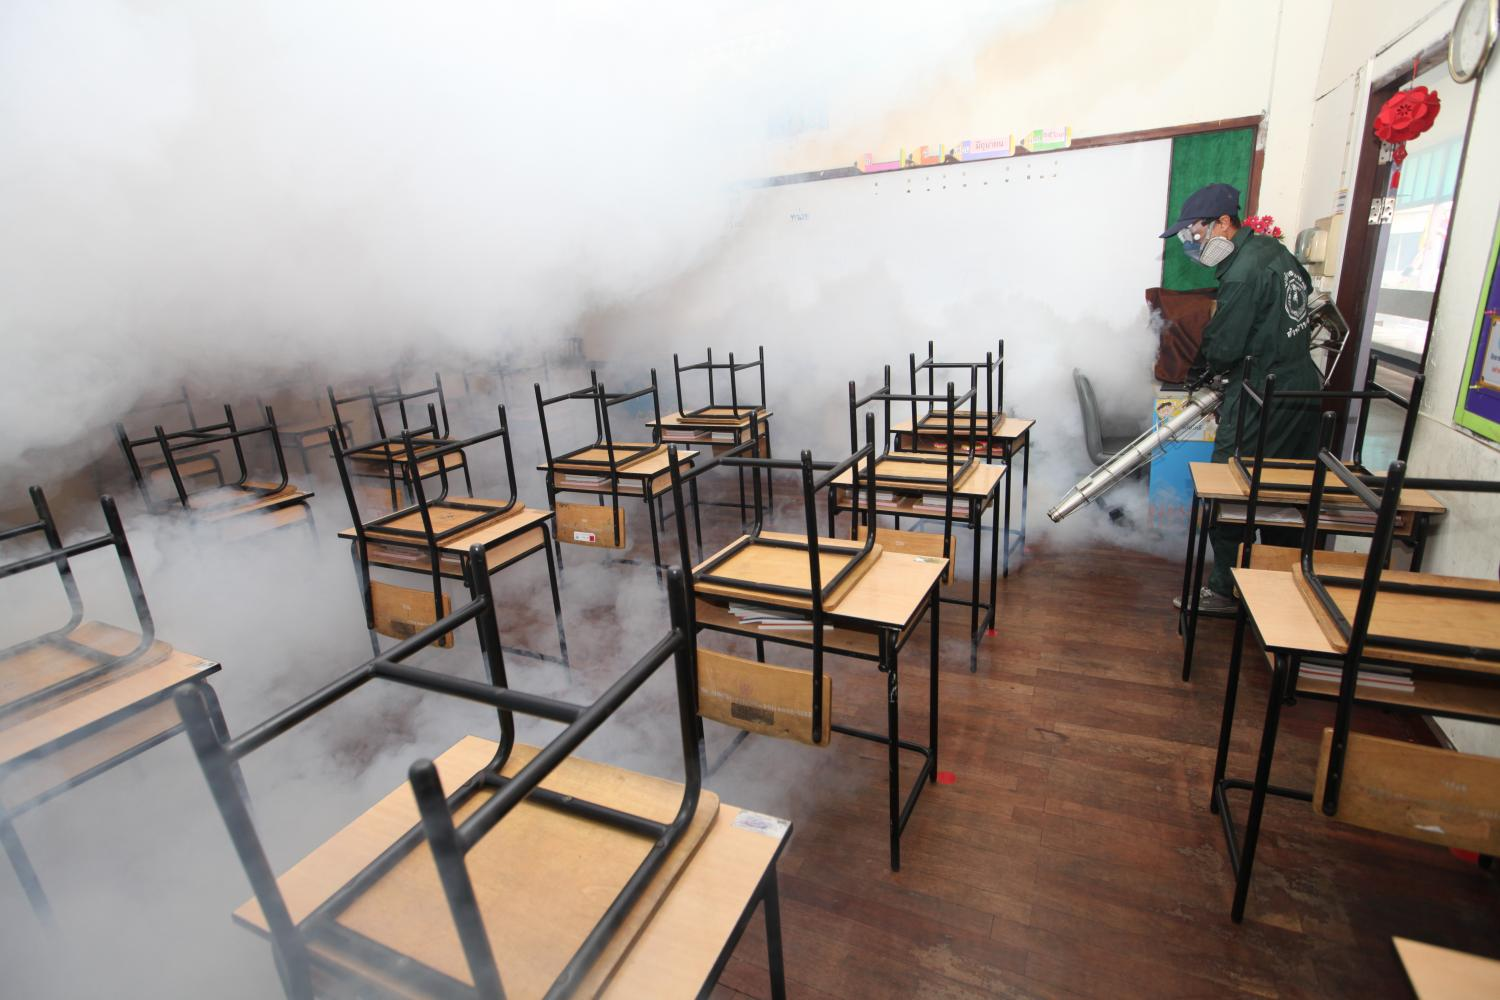 A Bang Rak district official on Monday sprays mosquito repellent in a classroom at Wat Hua Lamphong School to prepare for the new term that will begin on July 1. (Photo by Arnun Chonmahatrakool)